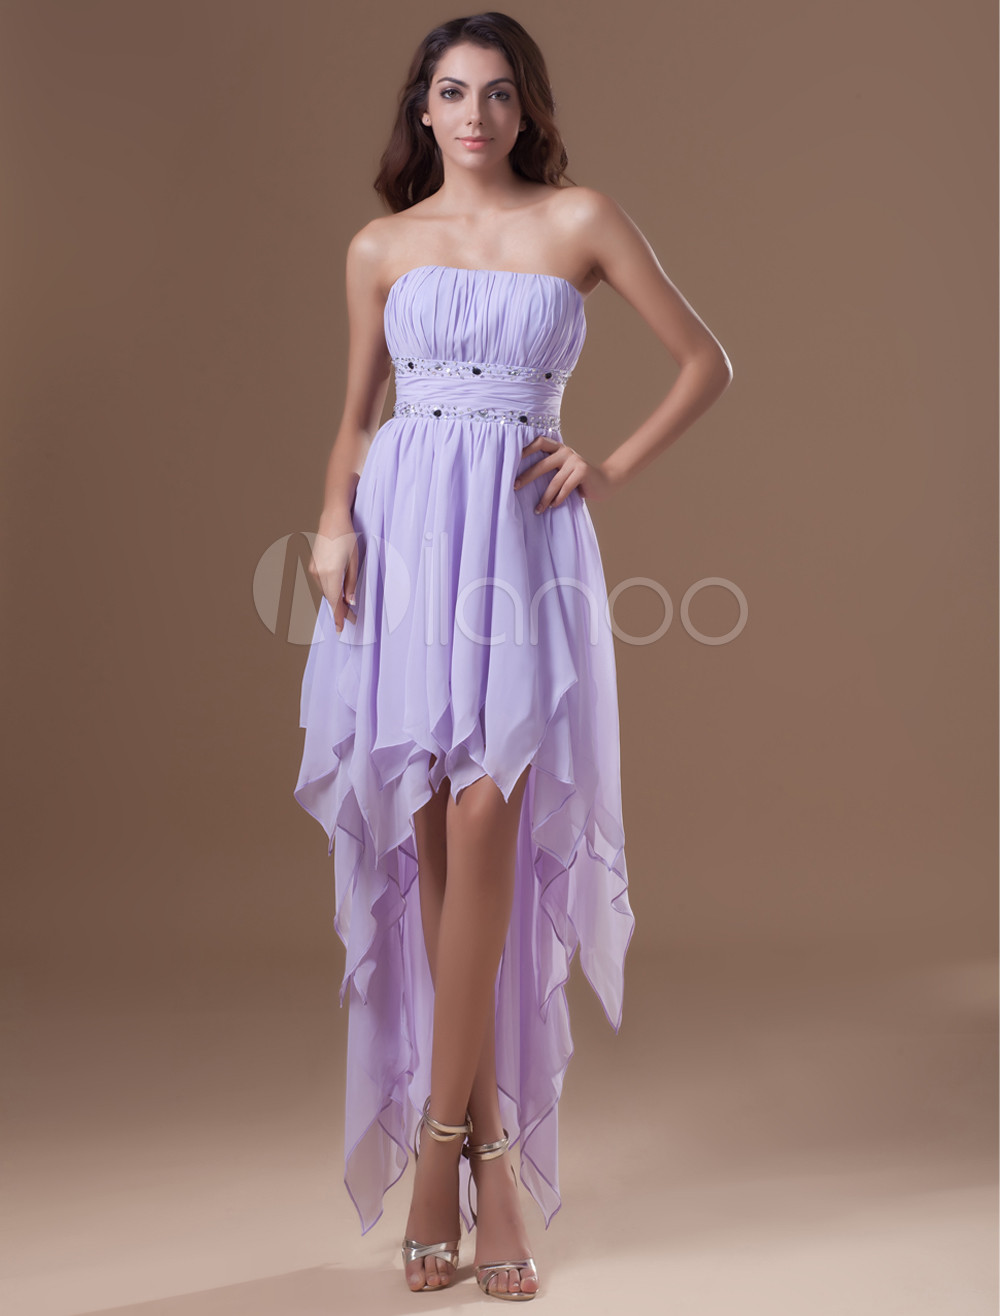 Short Prom Dress Lilac Strapless Chiffon Homecoming Dress High Low Rhinestones Beading Cocktail Dress